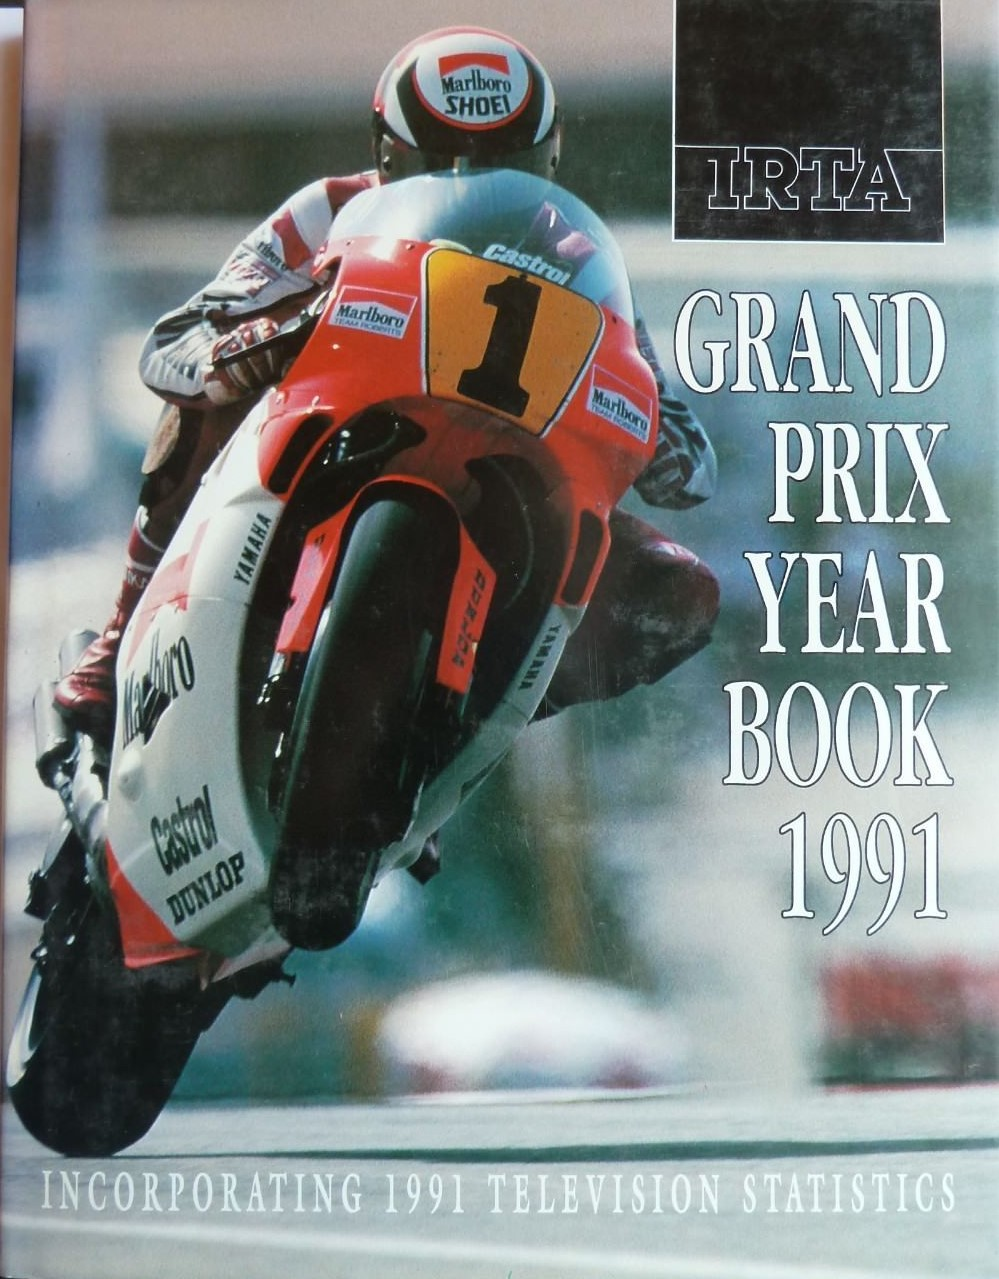 IRTA GP Yearbook 1991 Signed by Rainey